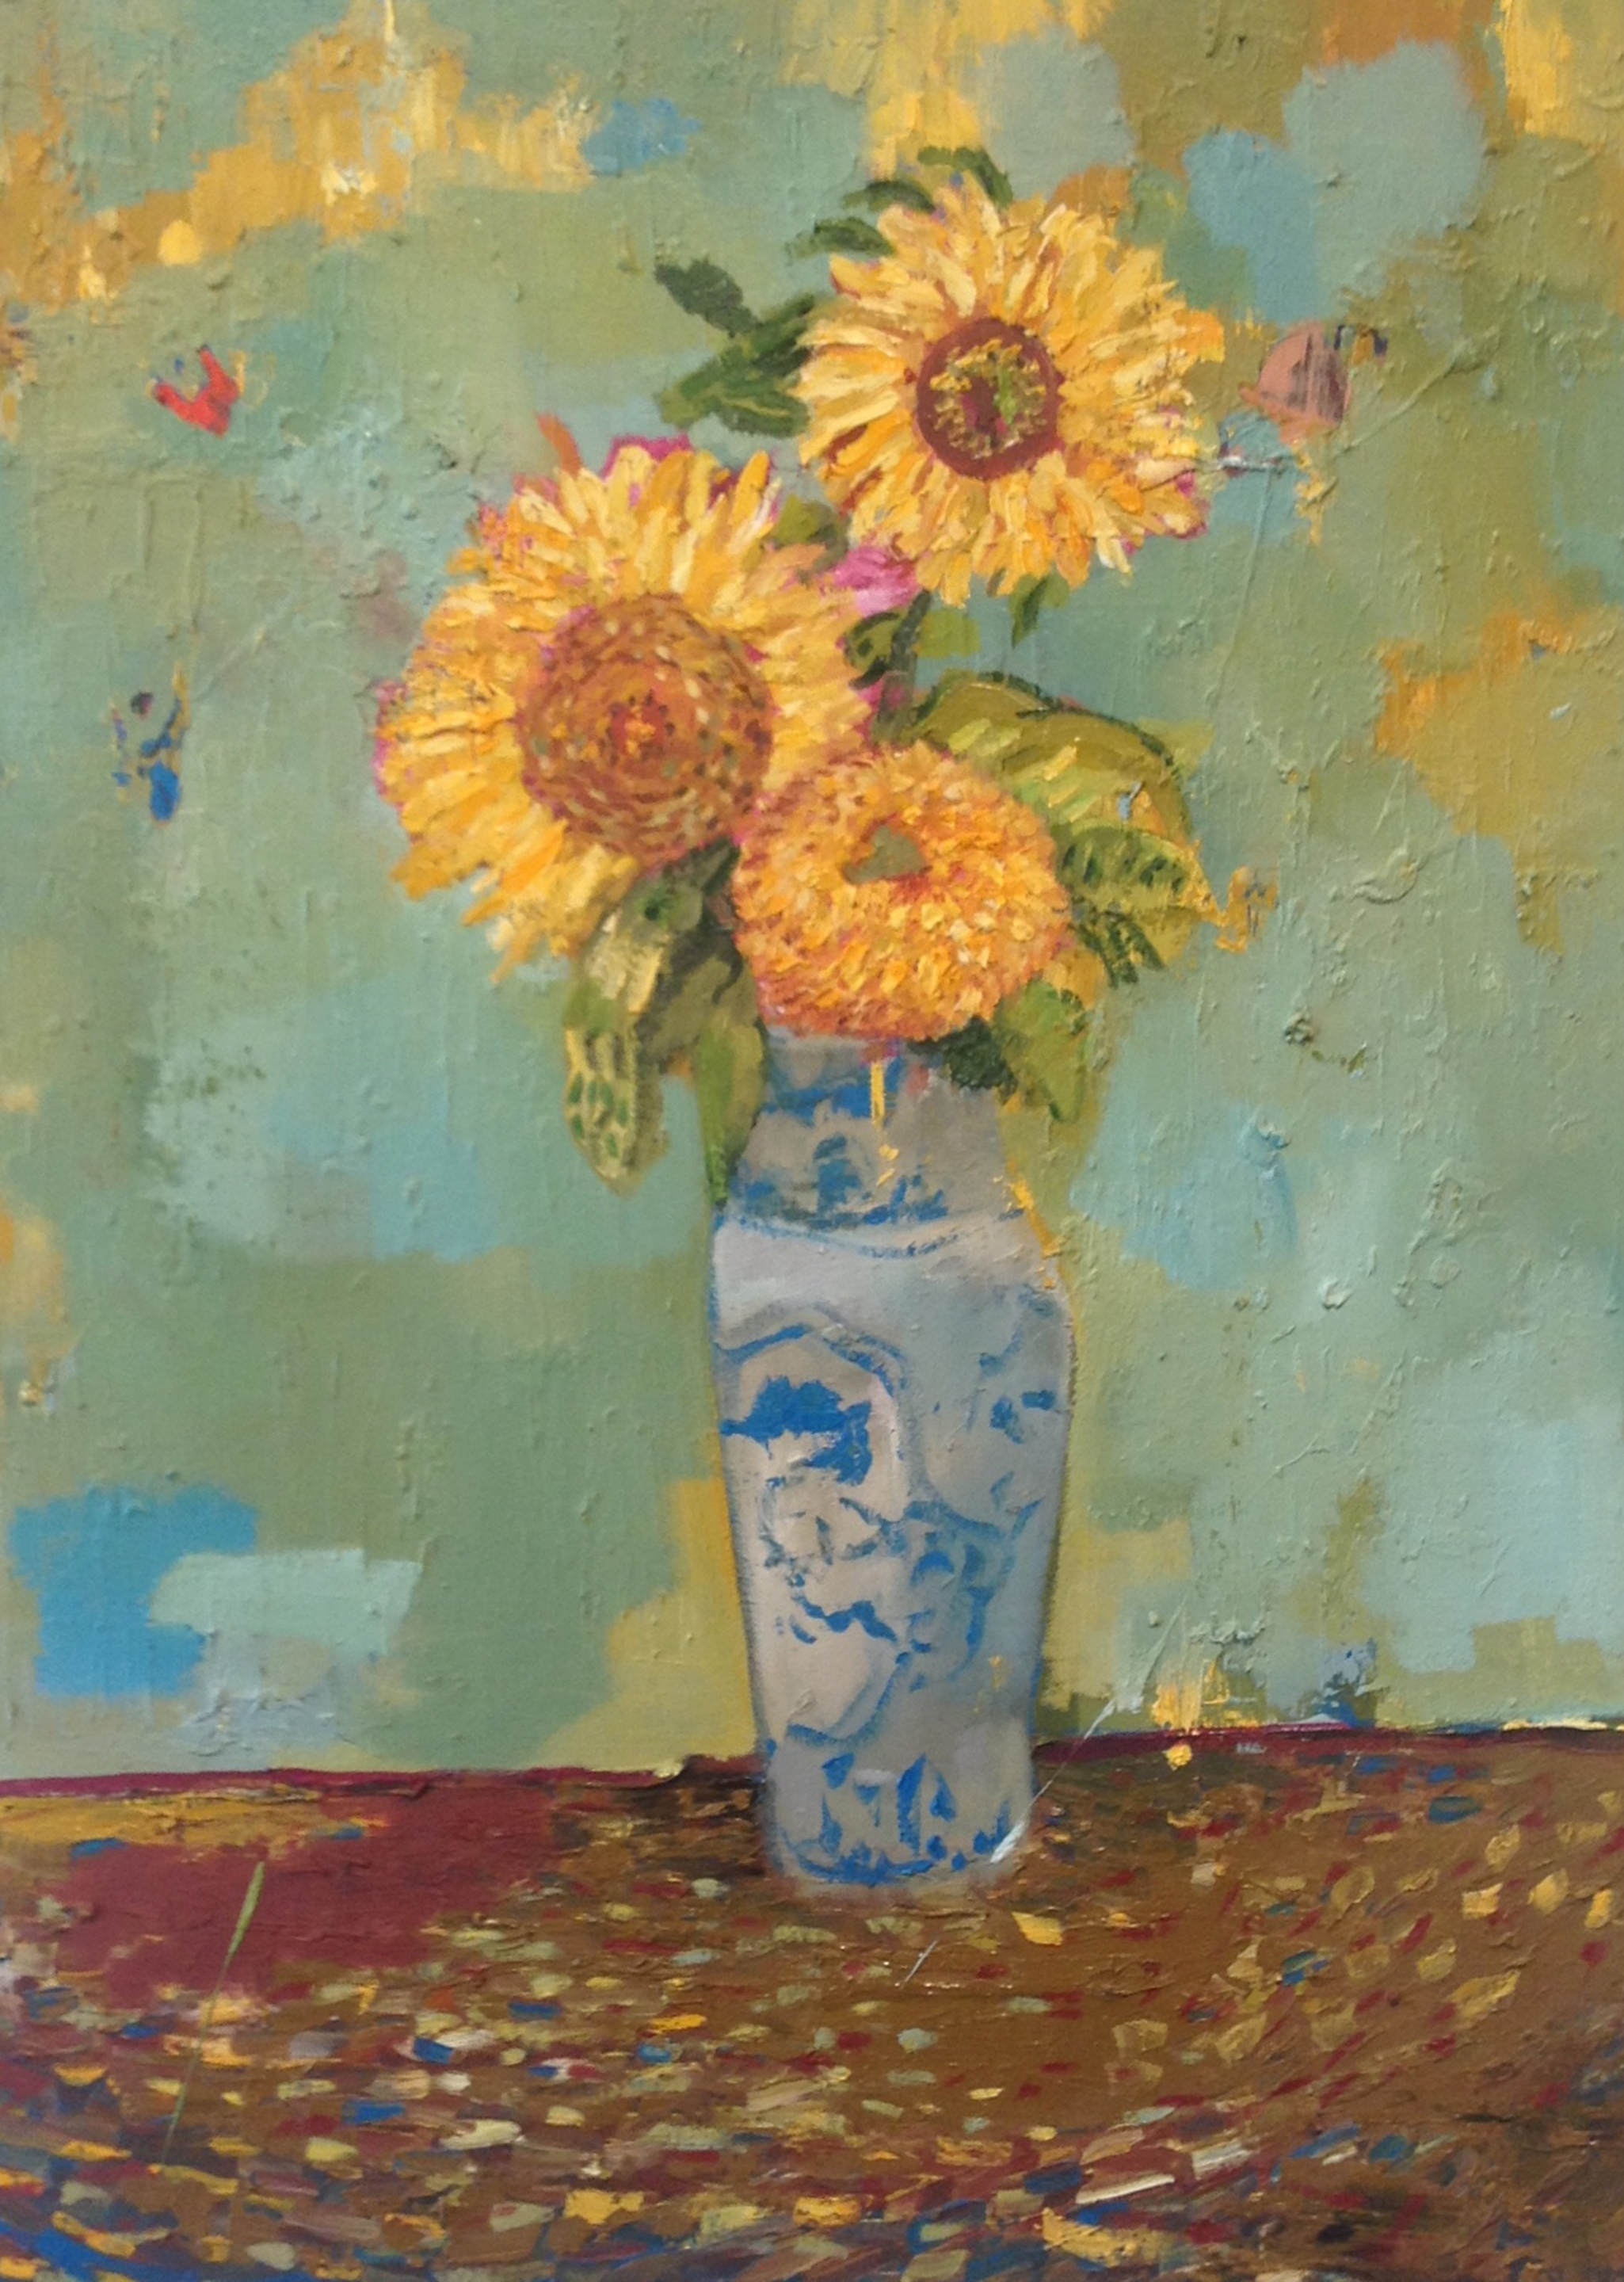 3 sunflowers in chinese vase, 2014, oil on canvas,27_x19.5_